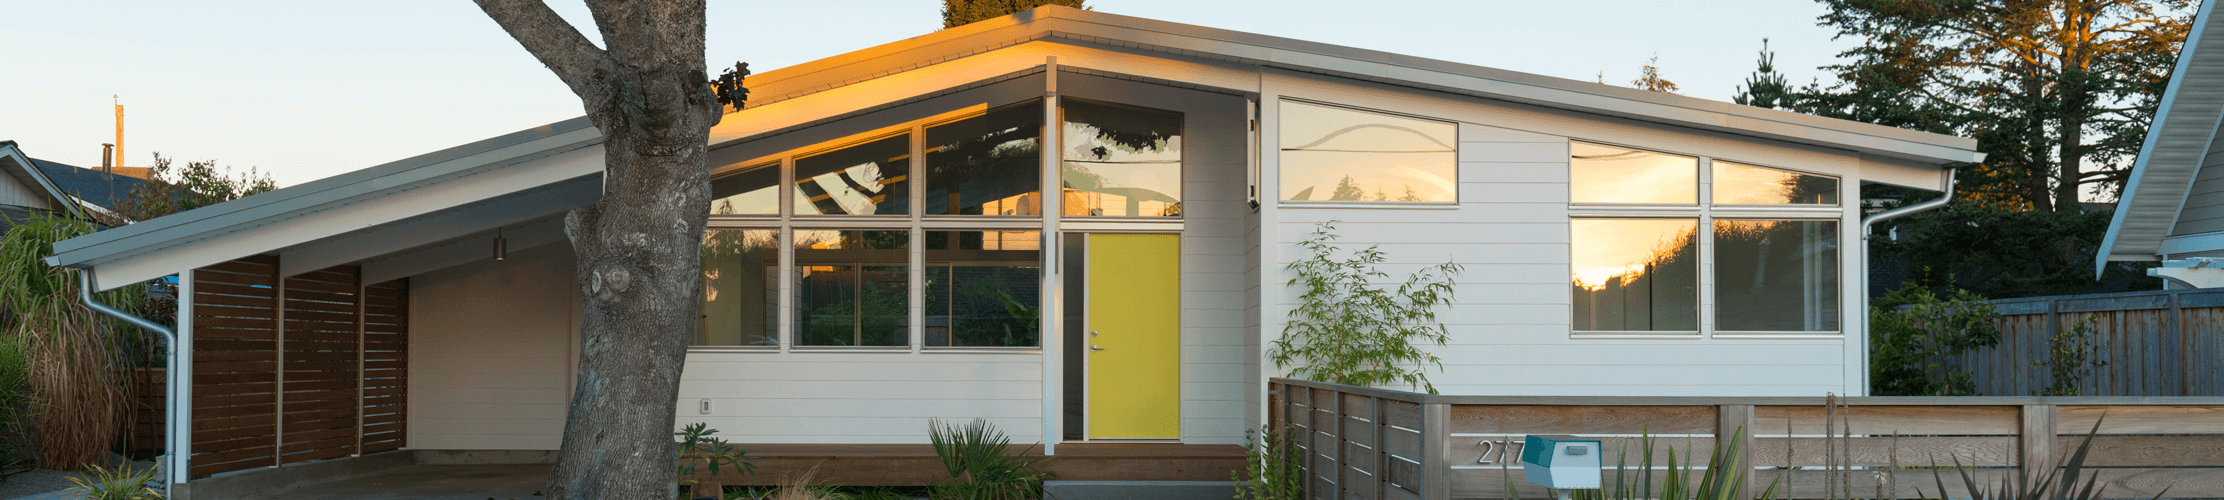 Boundary bay dream house from design to completion for Building our dream home blog